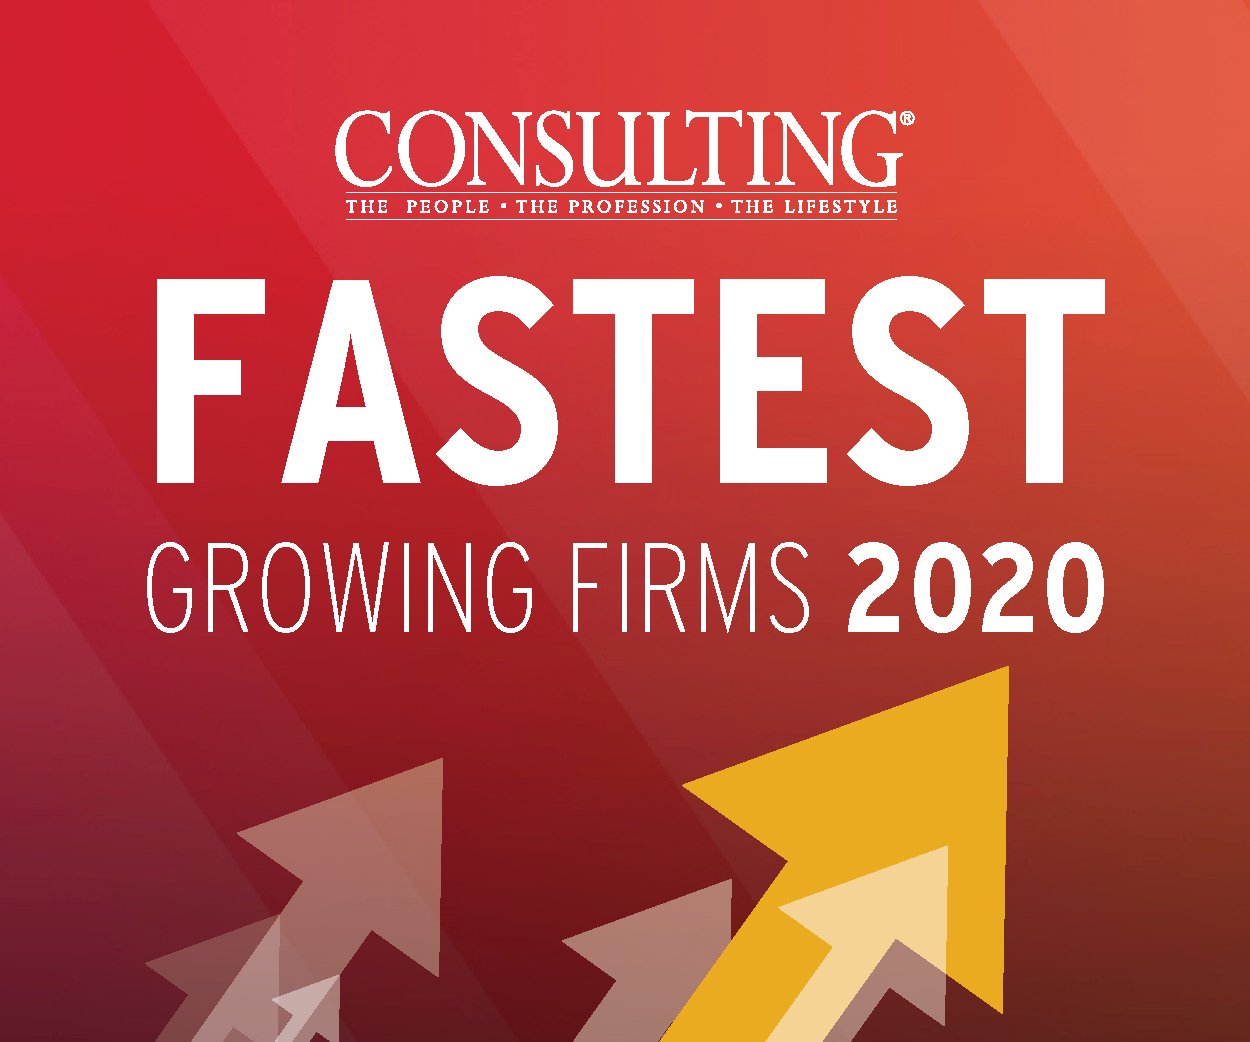 The 2020 Fastest Growing Firms